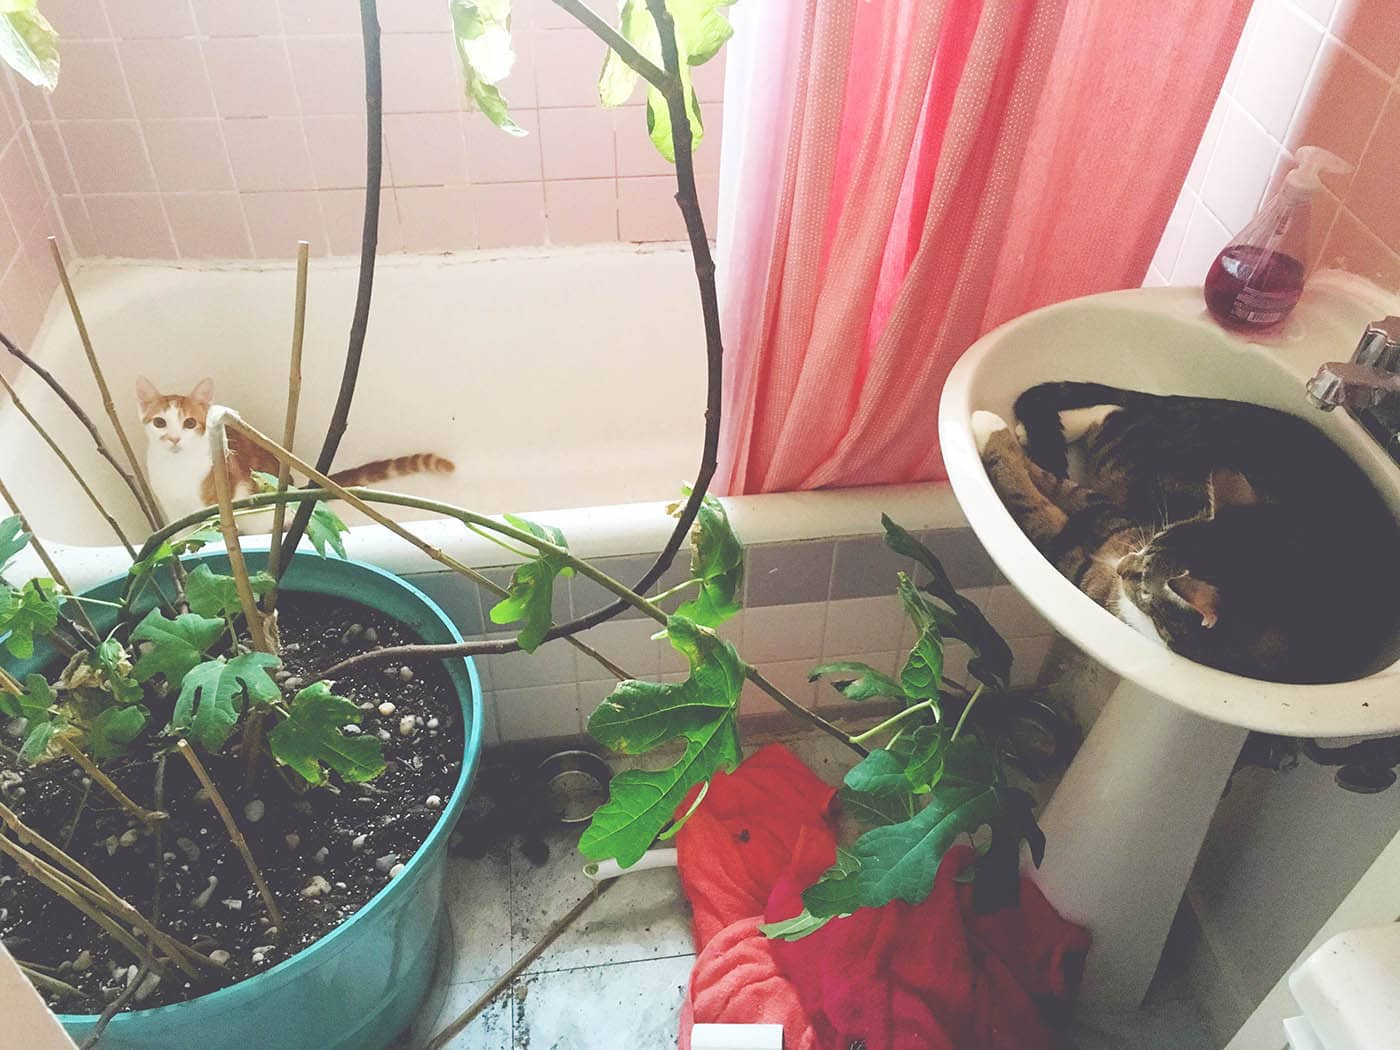 The cats got in the bathroom, and the plant. Chaos ensued.